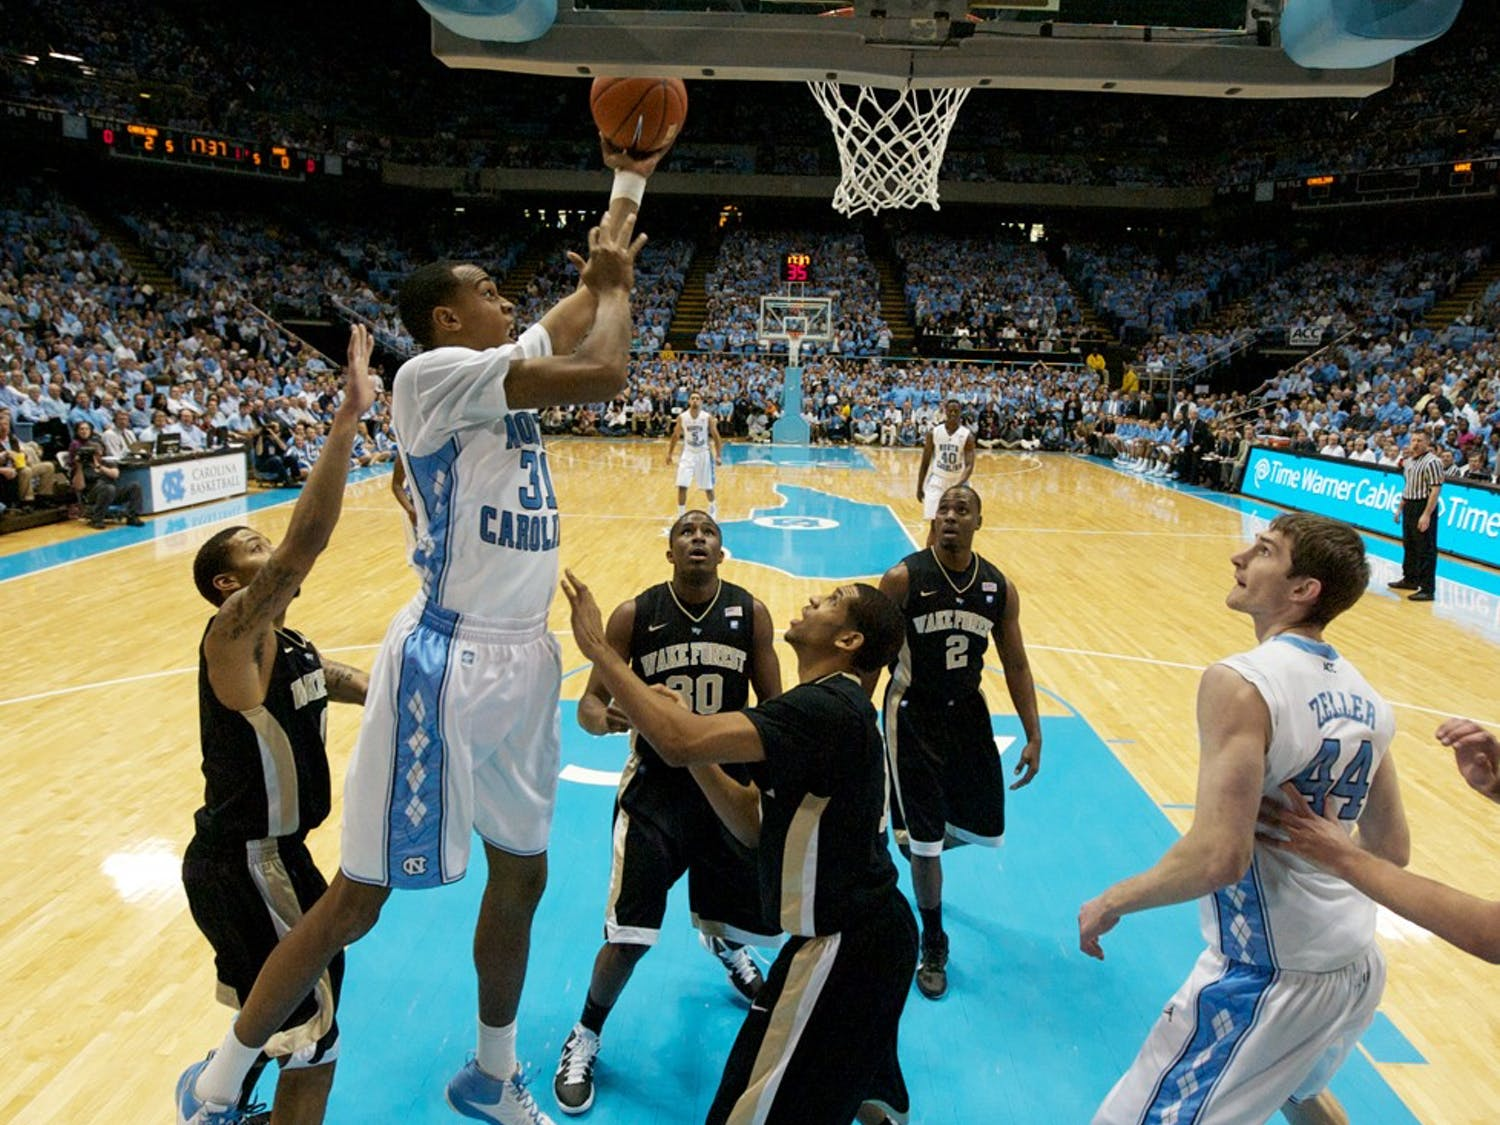 The University of North Carolina Tar Heels played the Wake Forest Demon Deacons on Tuesday, February 15, 2011 in The Dean E. Smith Center. The Tar Heels won 78-64.